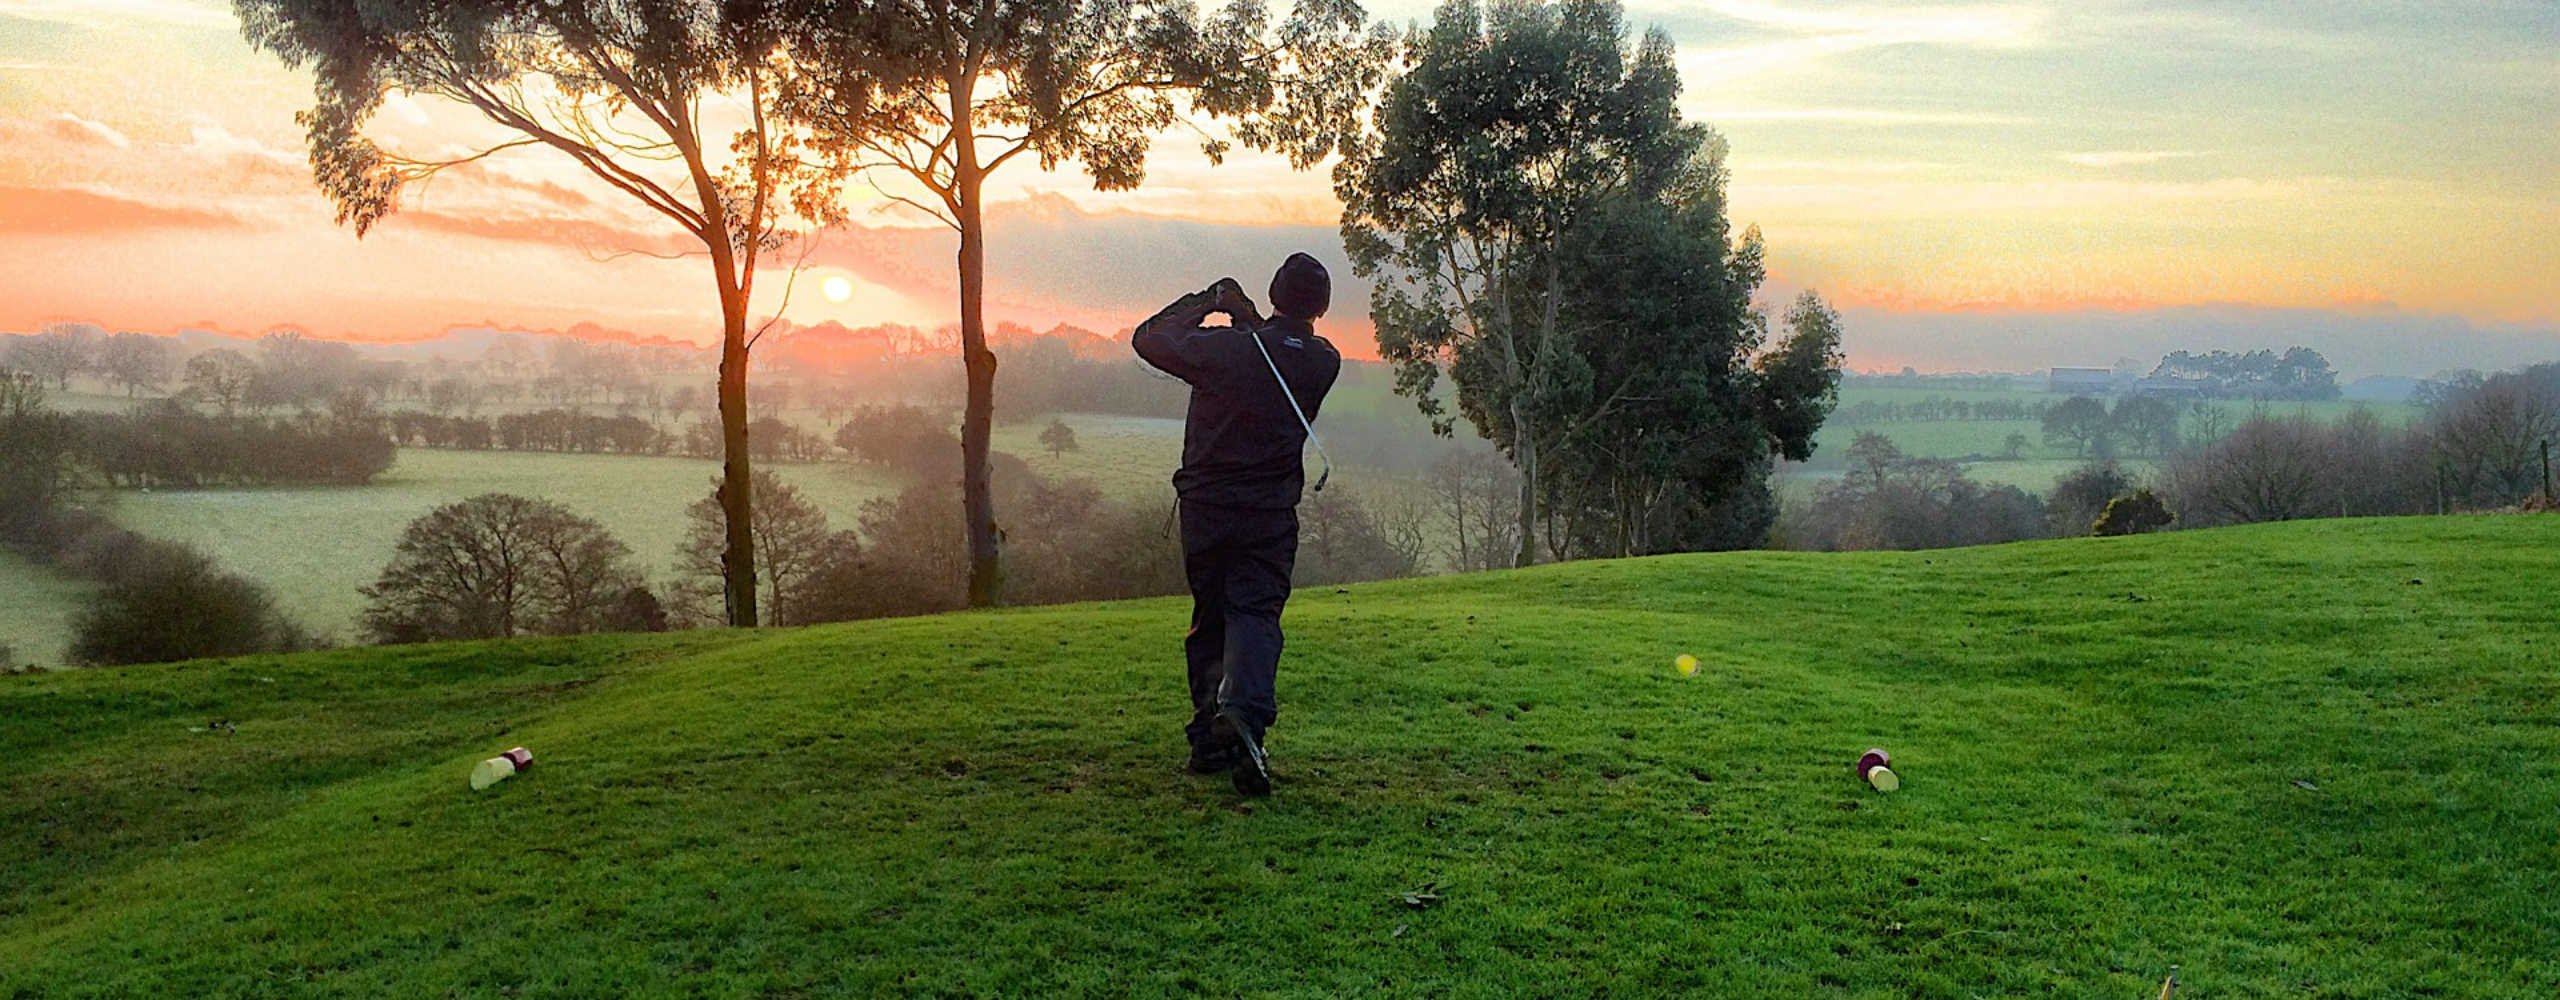 forge-accueil Official website of the Departmental Golf Committee of Dordogne